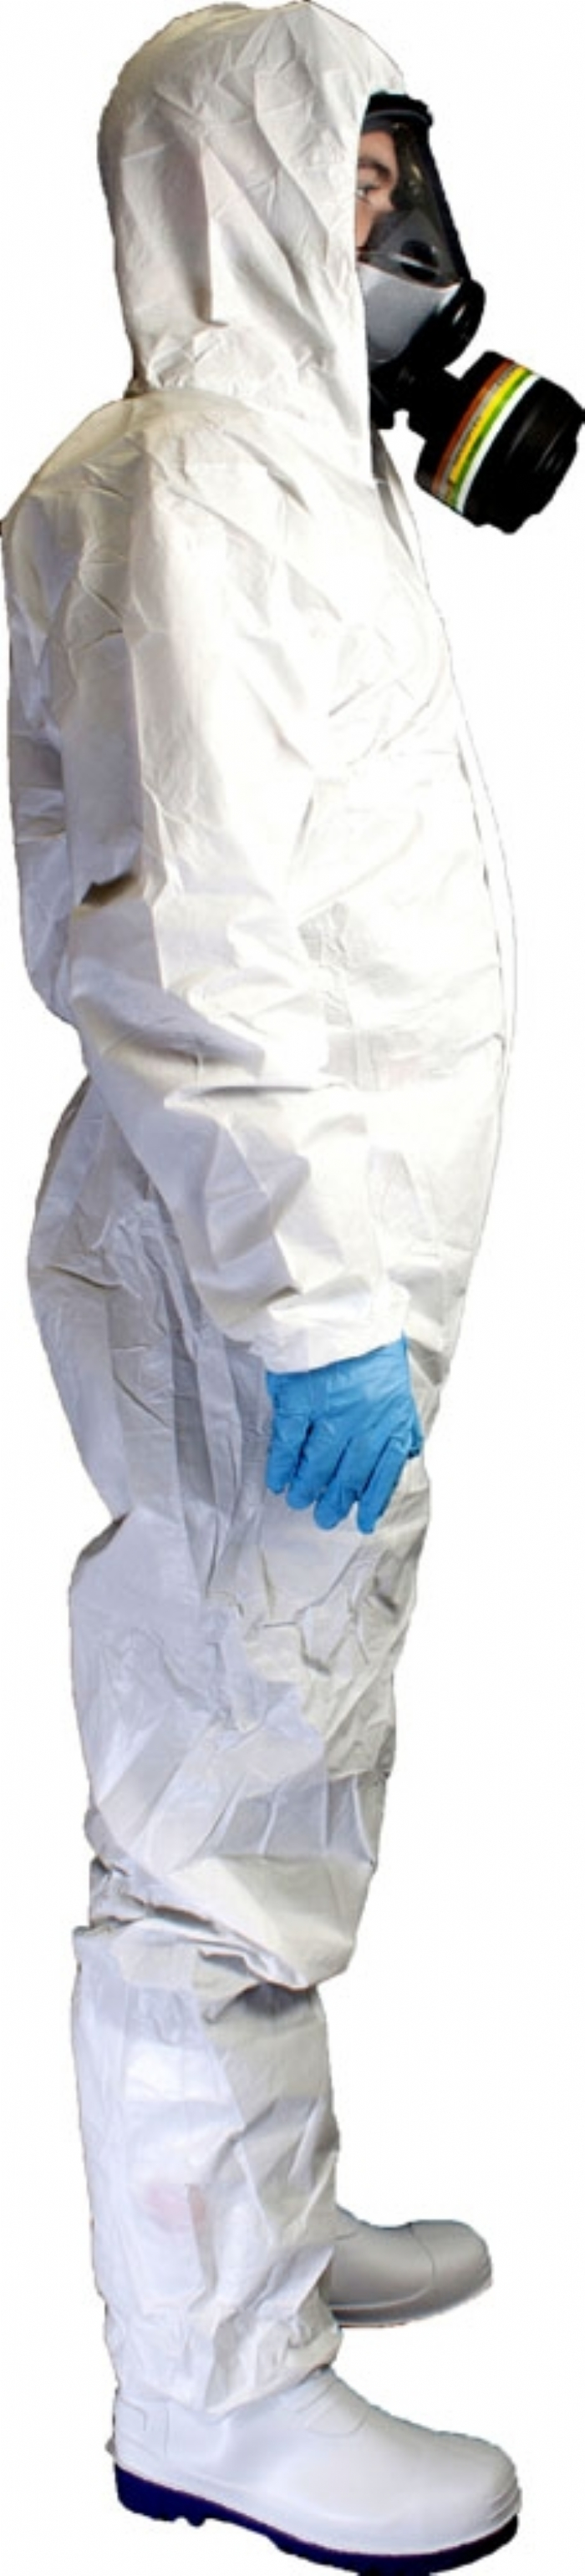 CHEMSPLASH Disposable Coverall